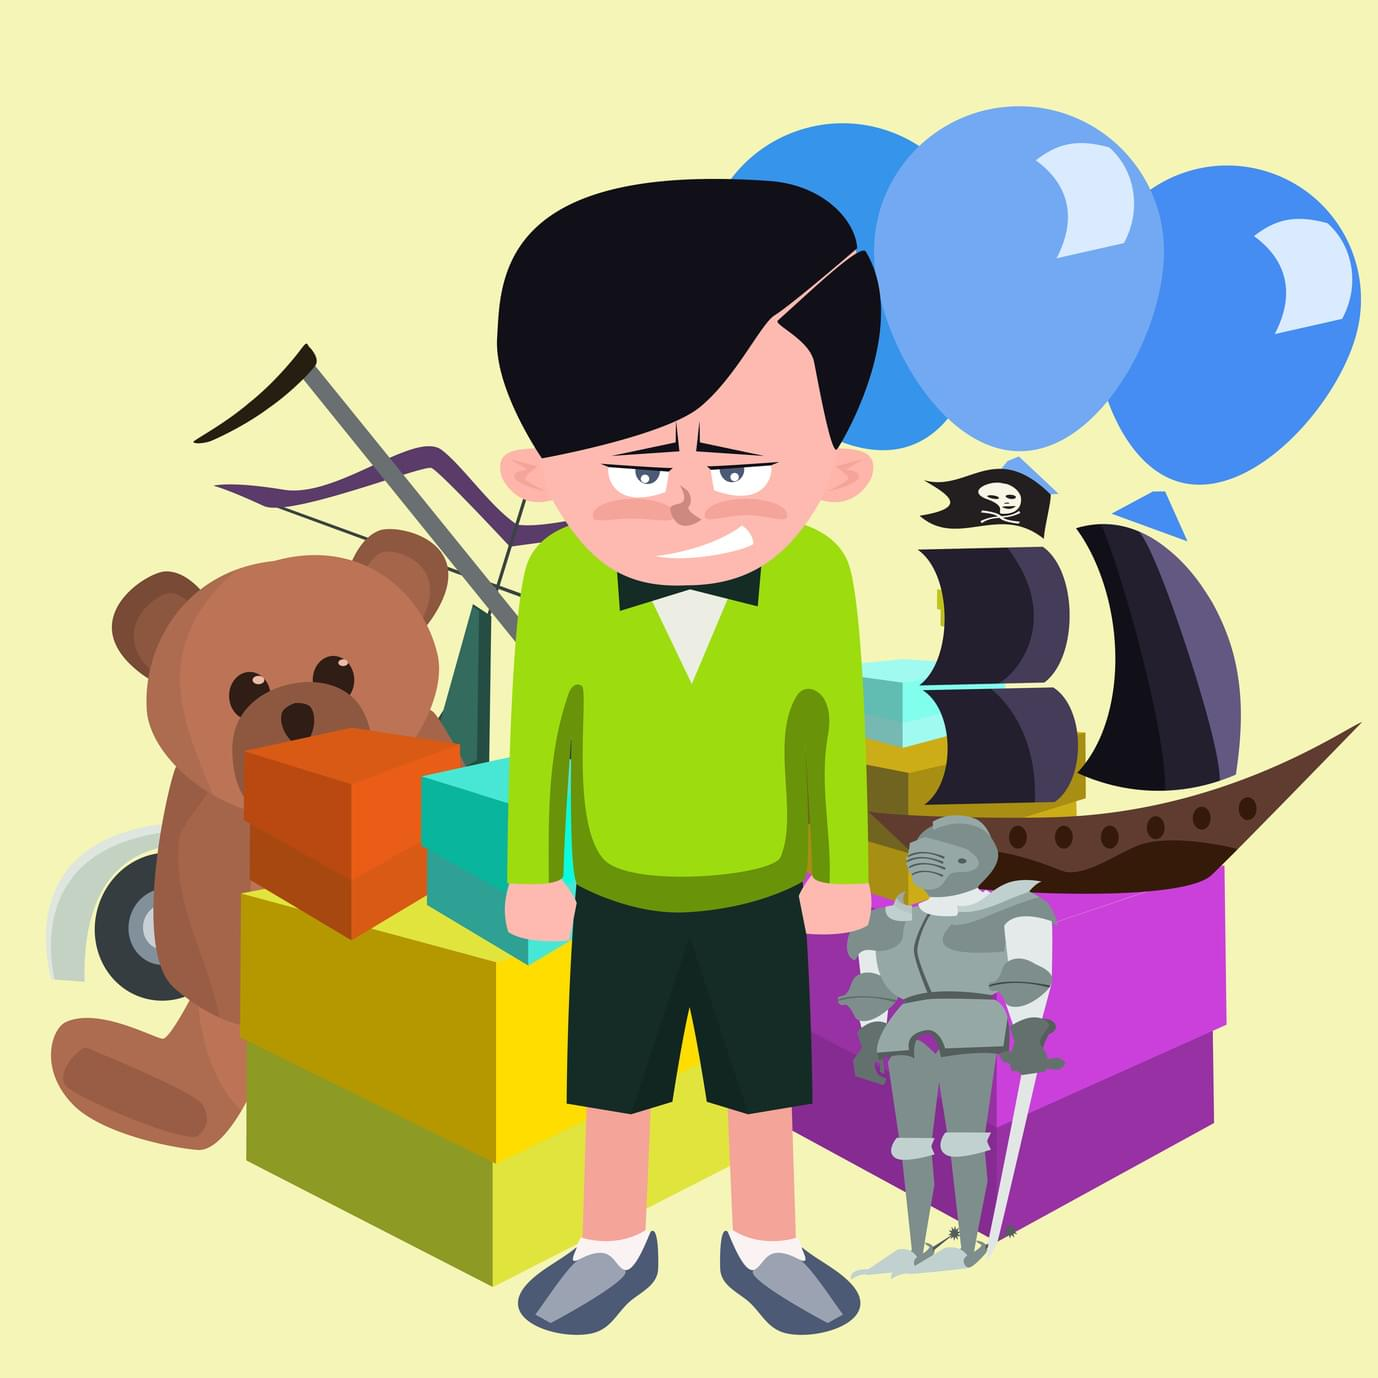 A spoiled child with many toys